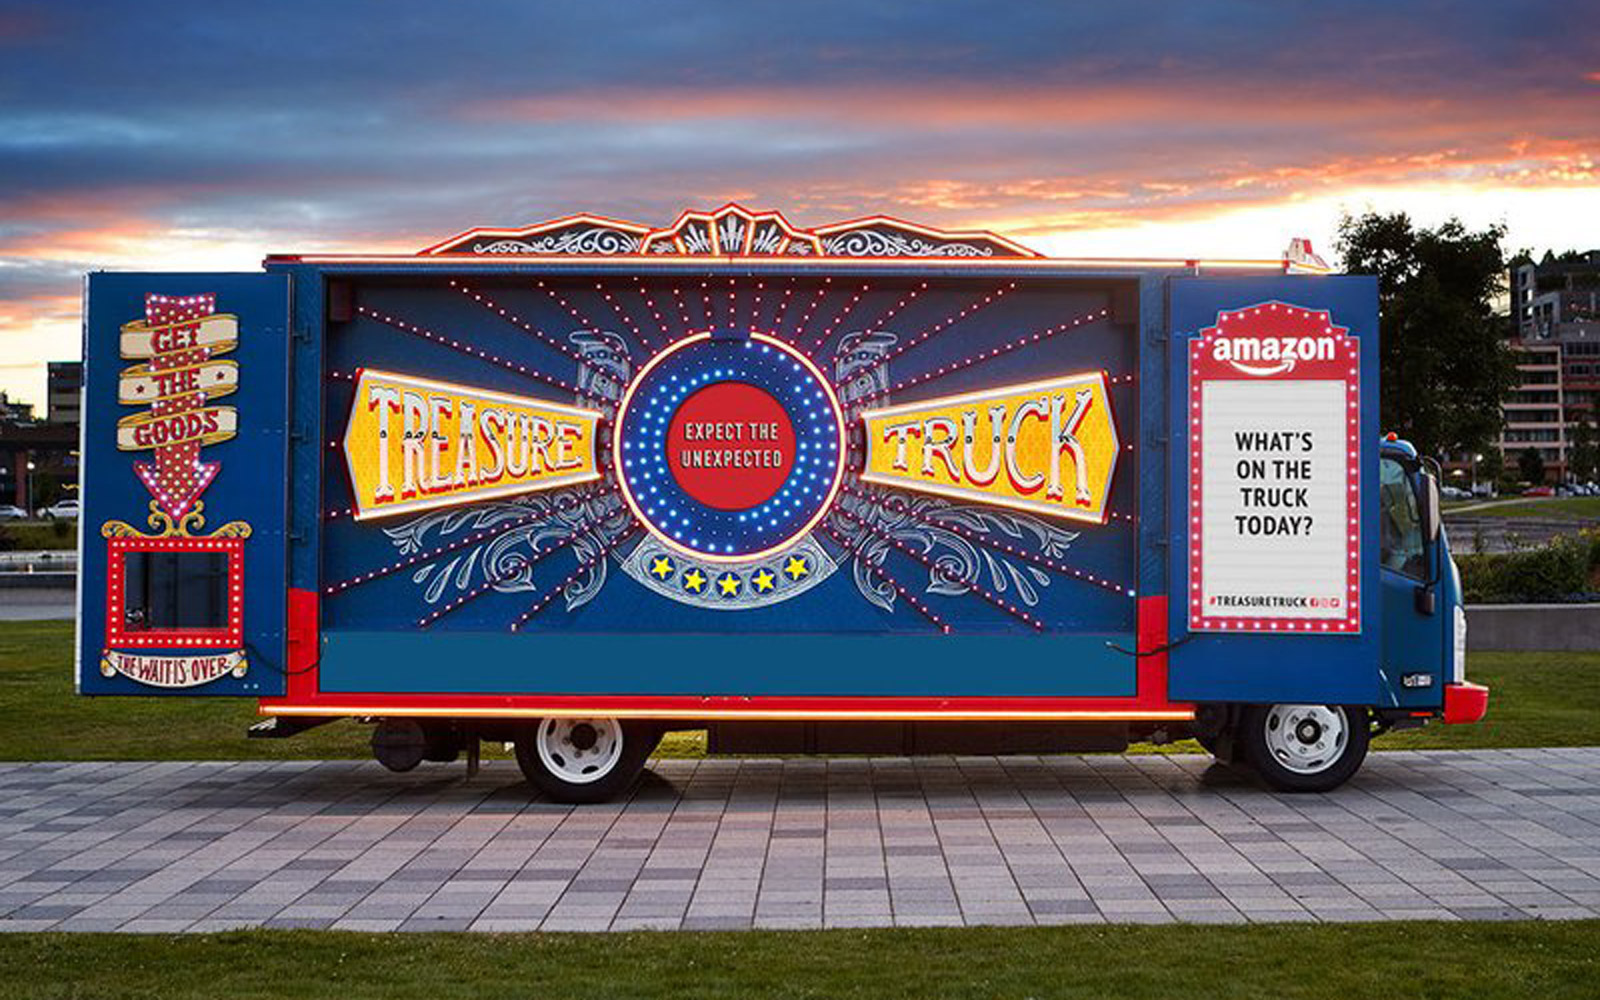 Amazon's 'Treasure Truck' Is Stopping at Whole Foods Locations Across the U.S.